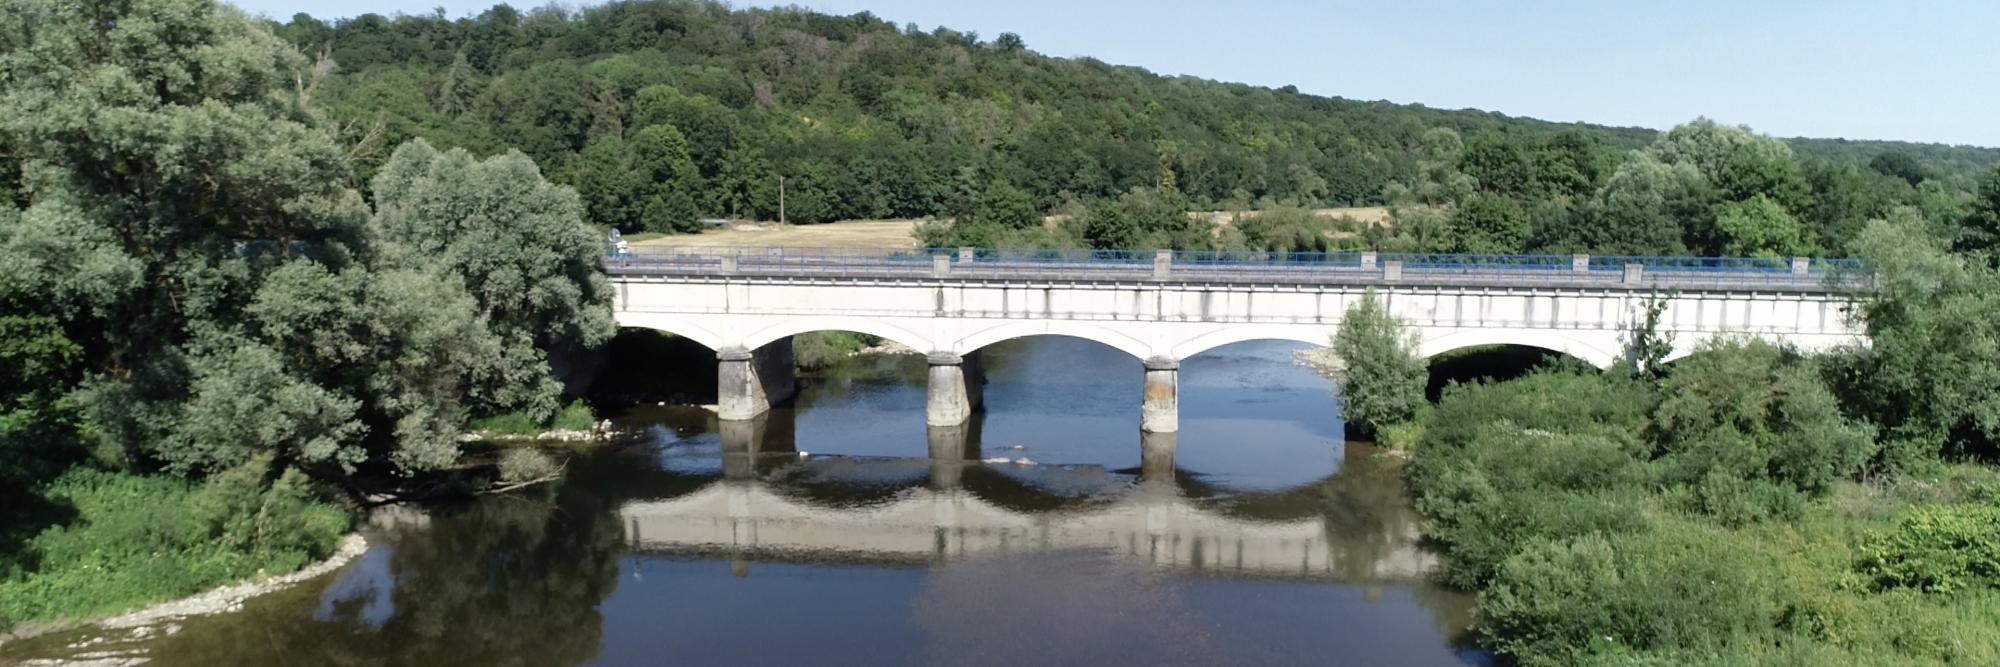 Pont canal Flavigny sur Moselle